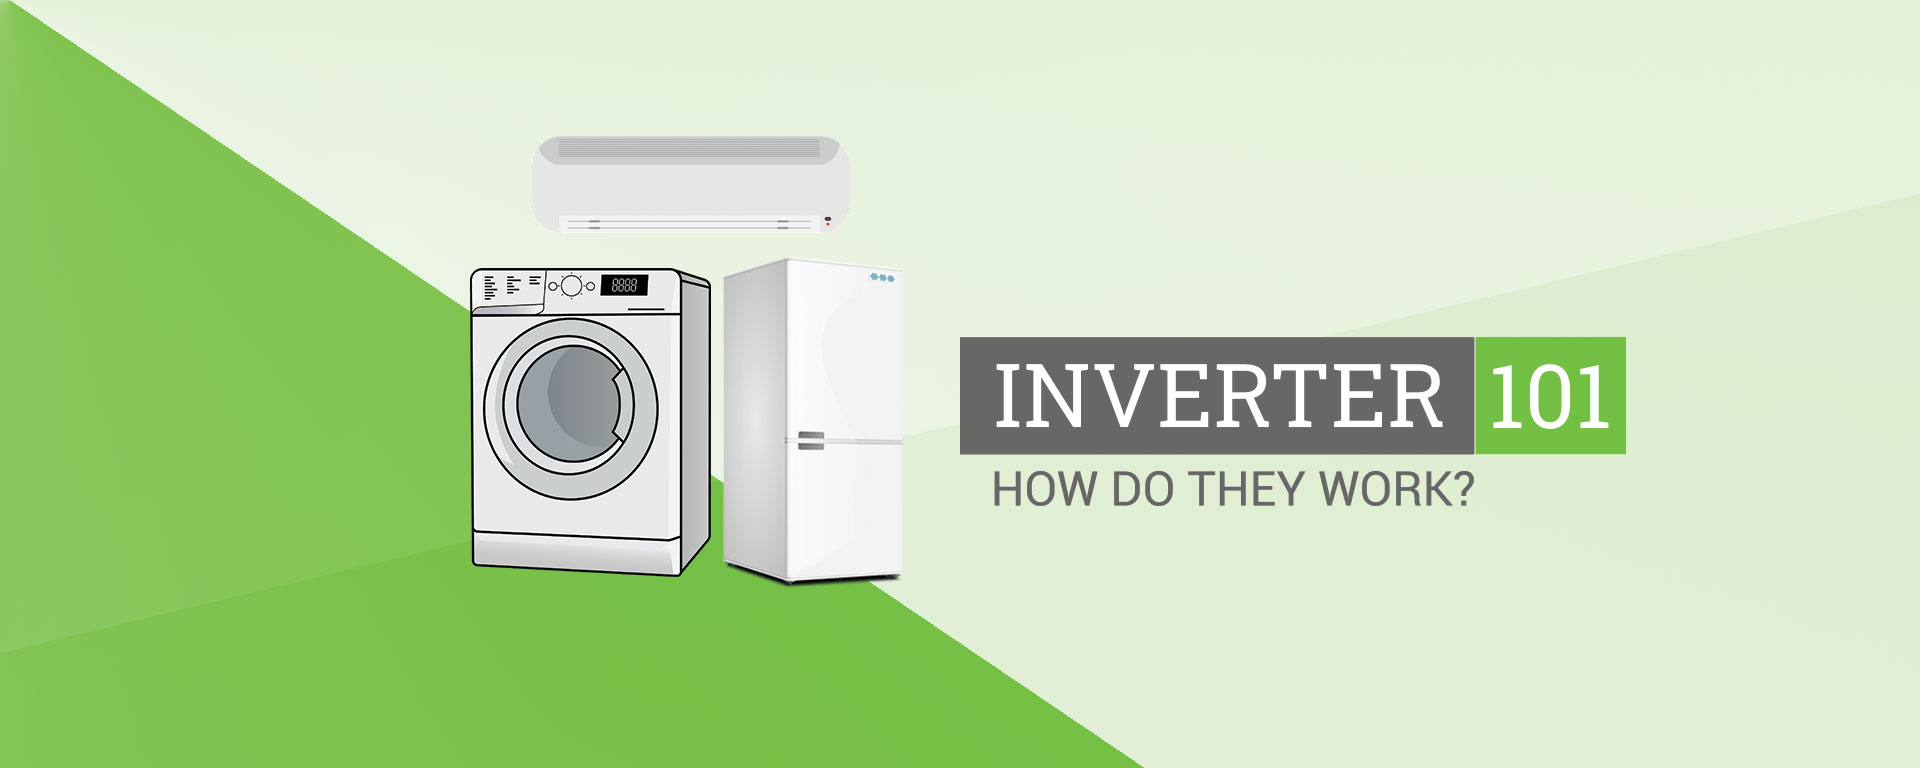 inverter technology in appliances